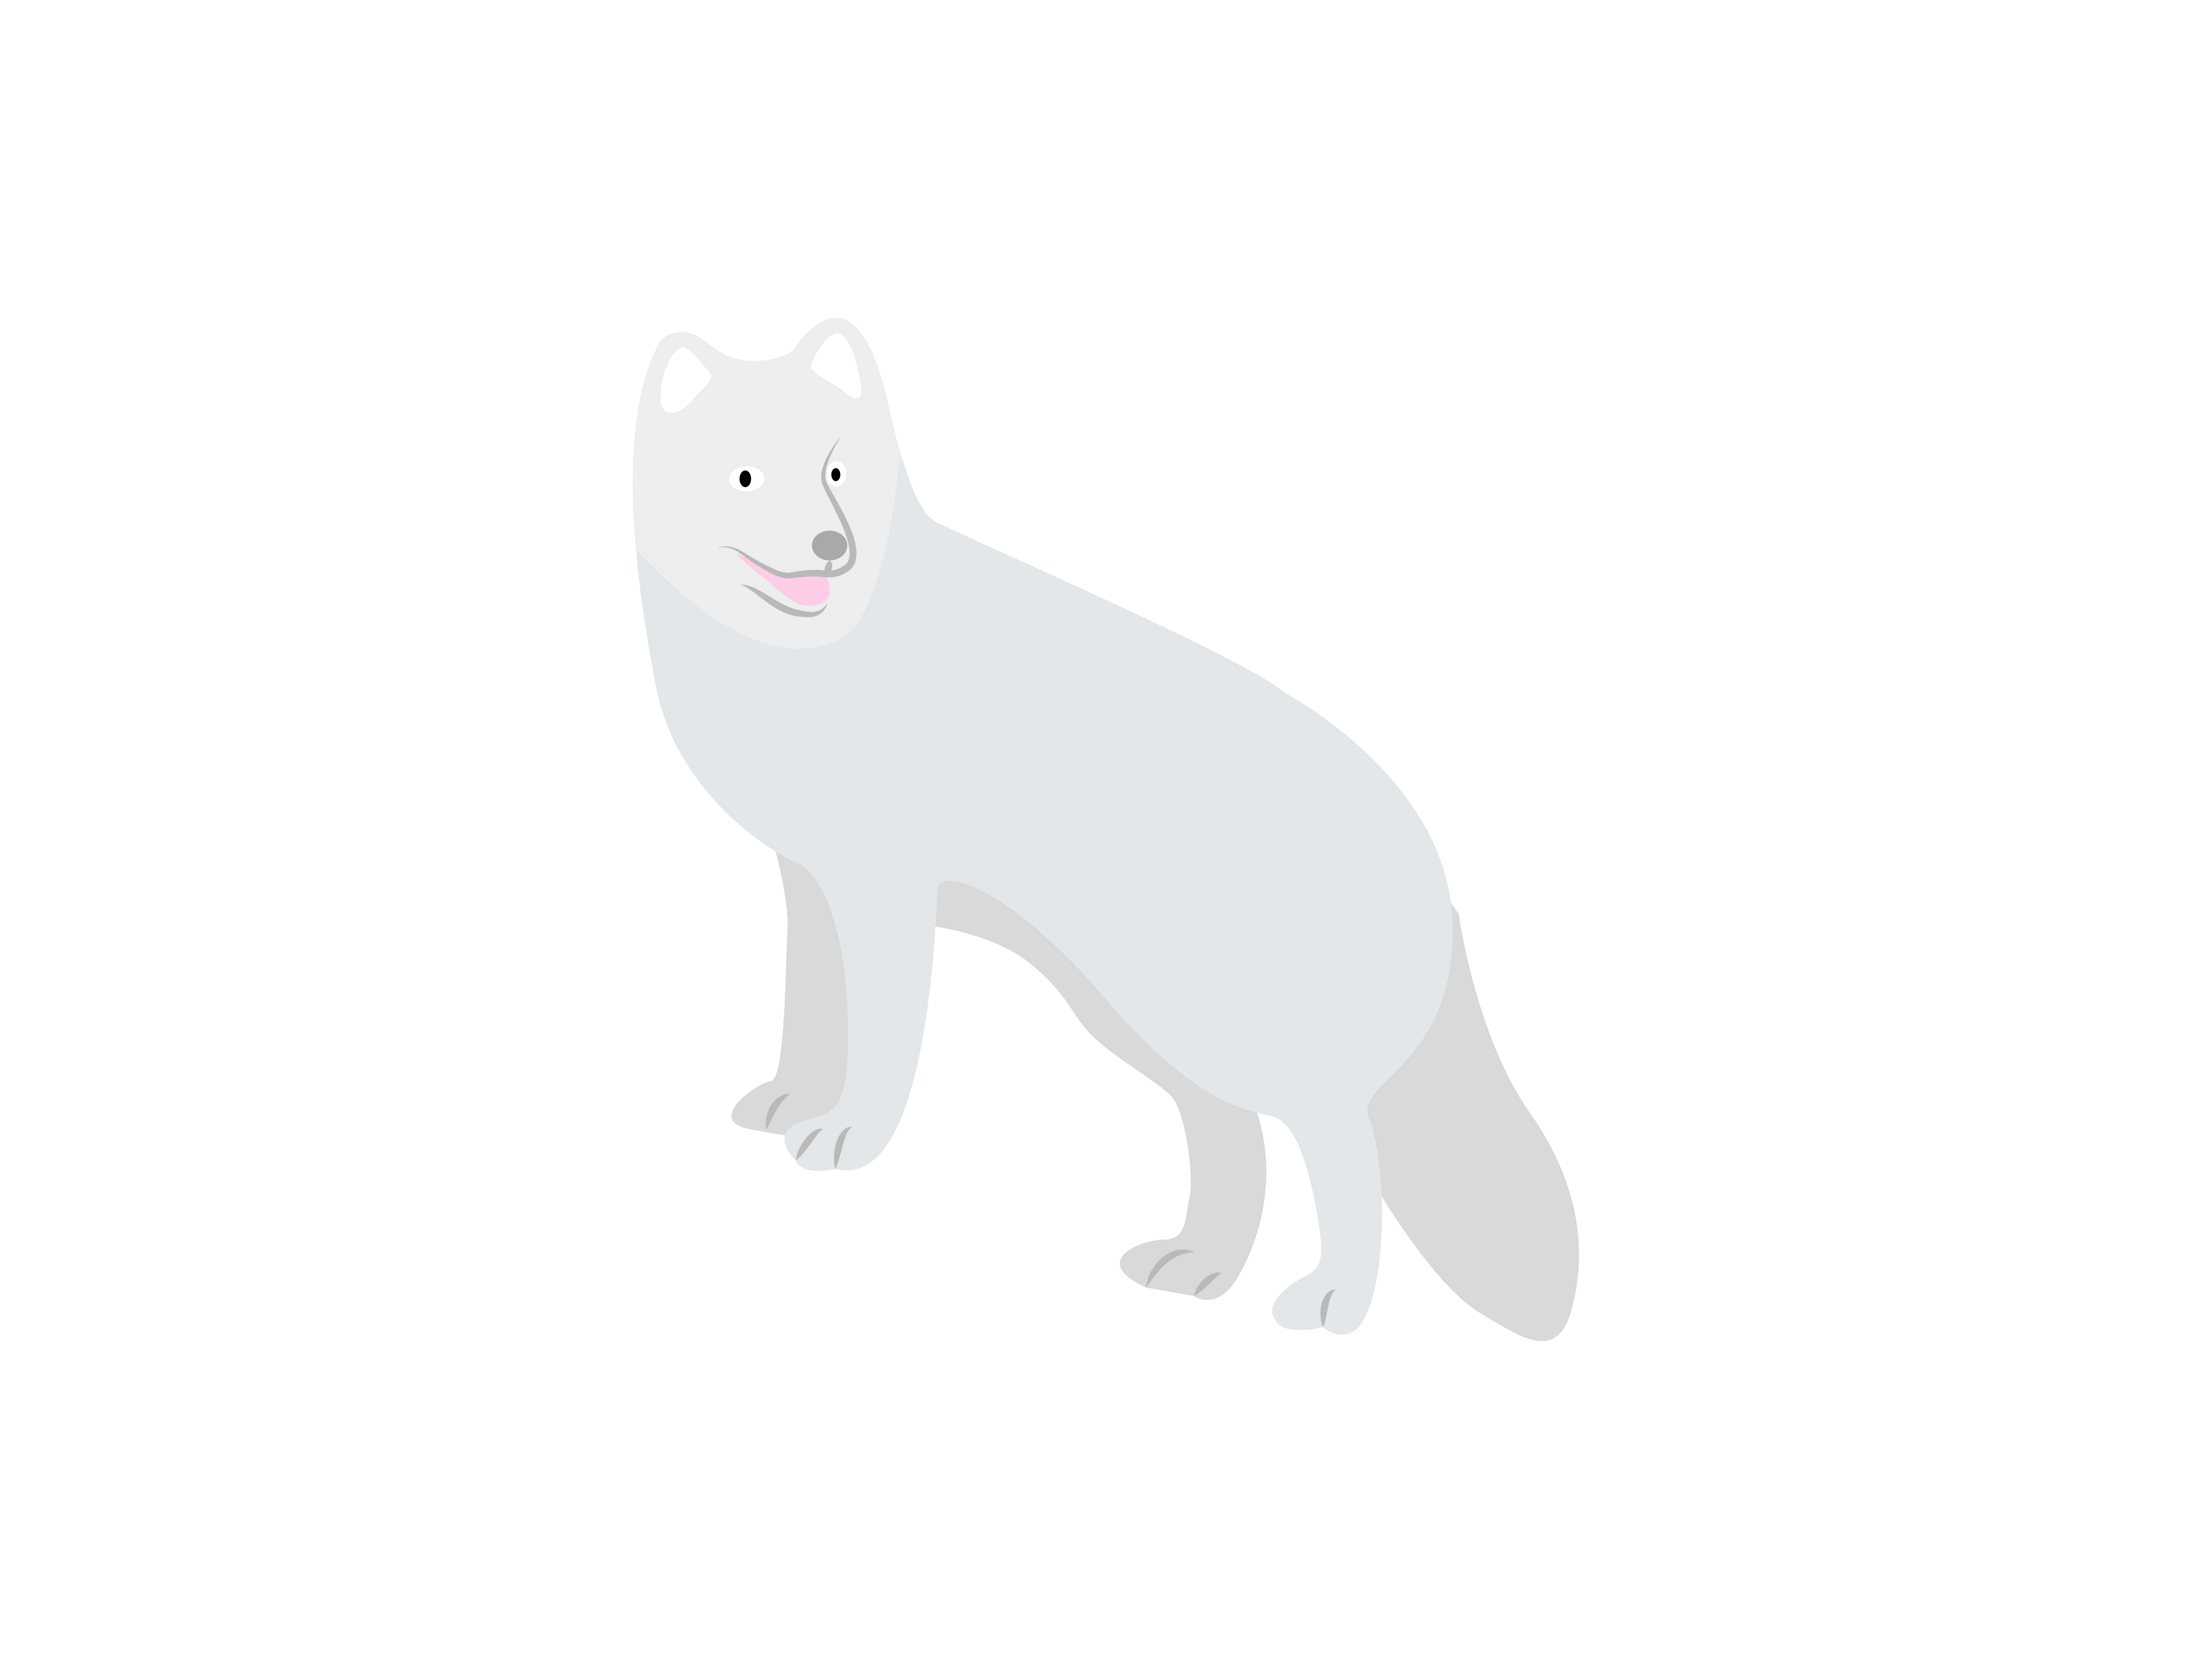 Download Free The Snow Wolf Is Standing Graphic By Archshape Creative Fabrica for Cricut Explore, Silhouette and other cutting machines.